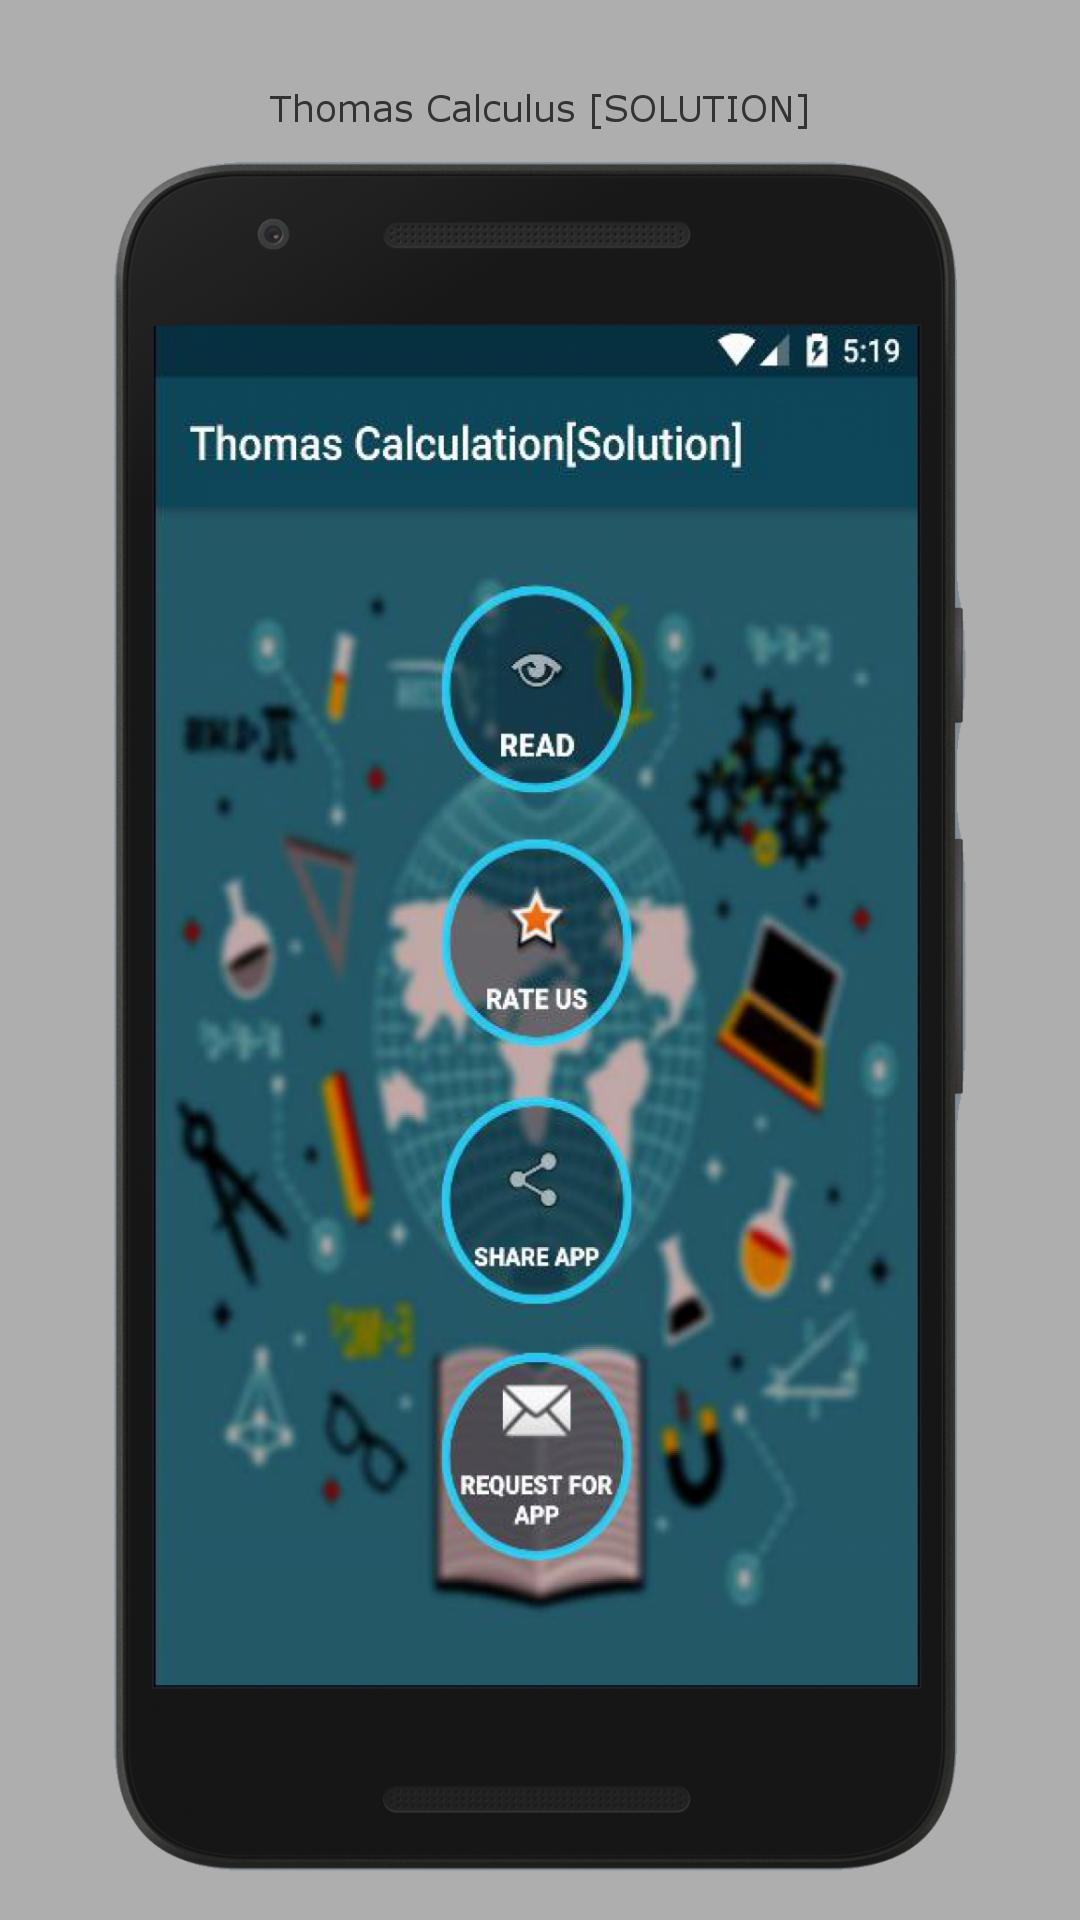 Thomas Calculus[Solution] for Android - APK Download